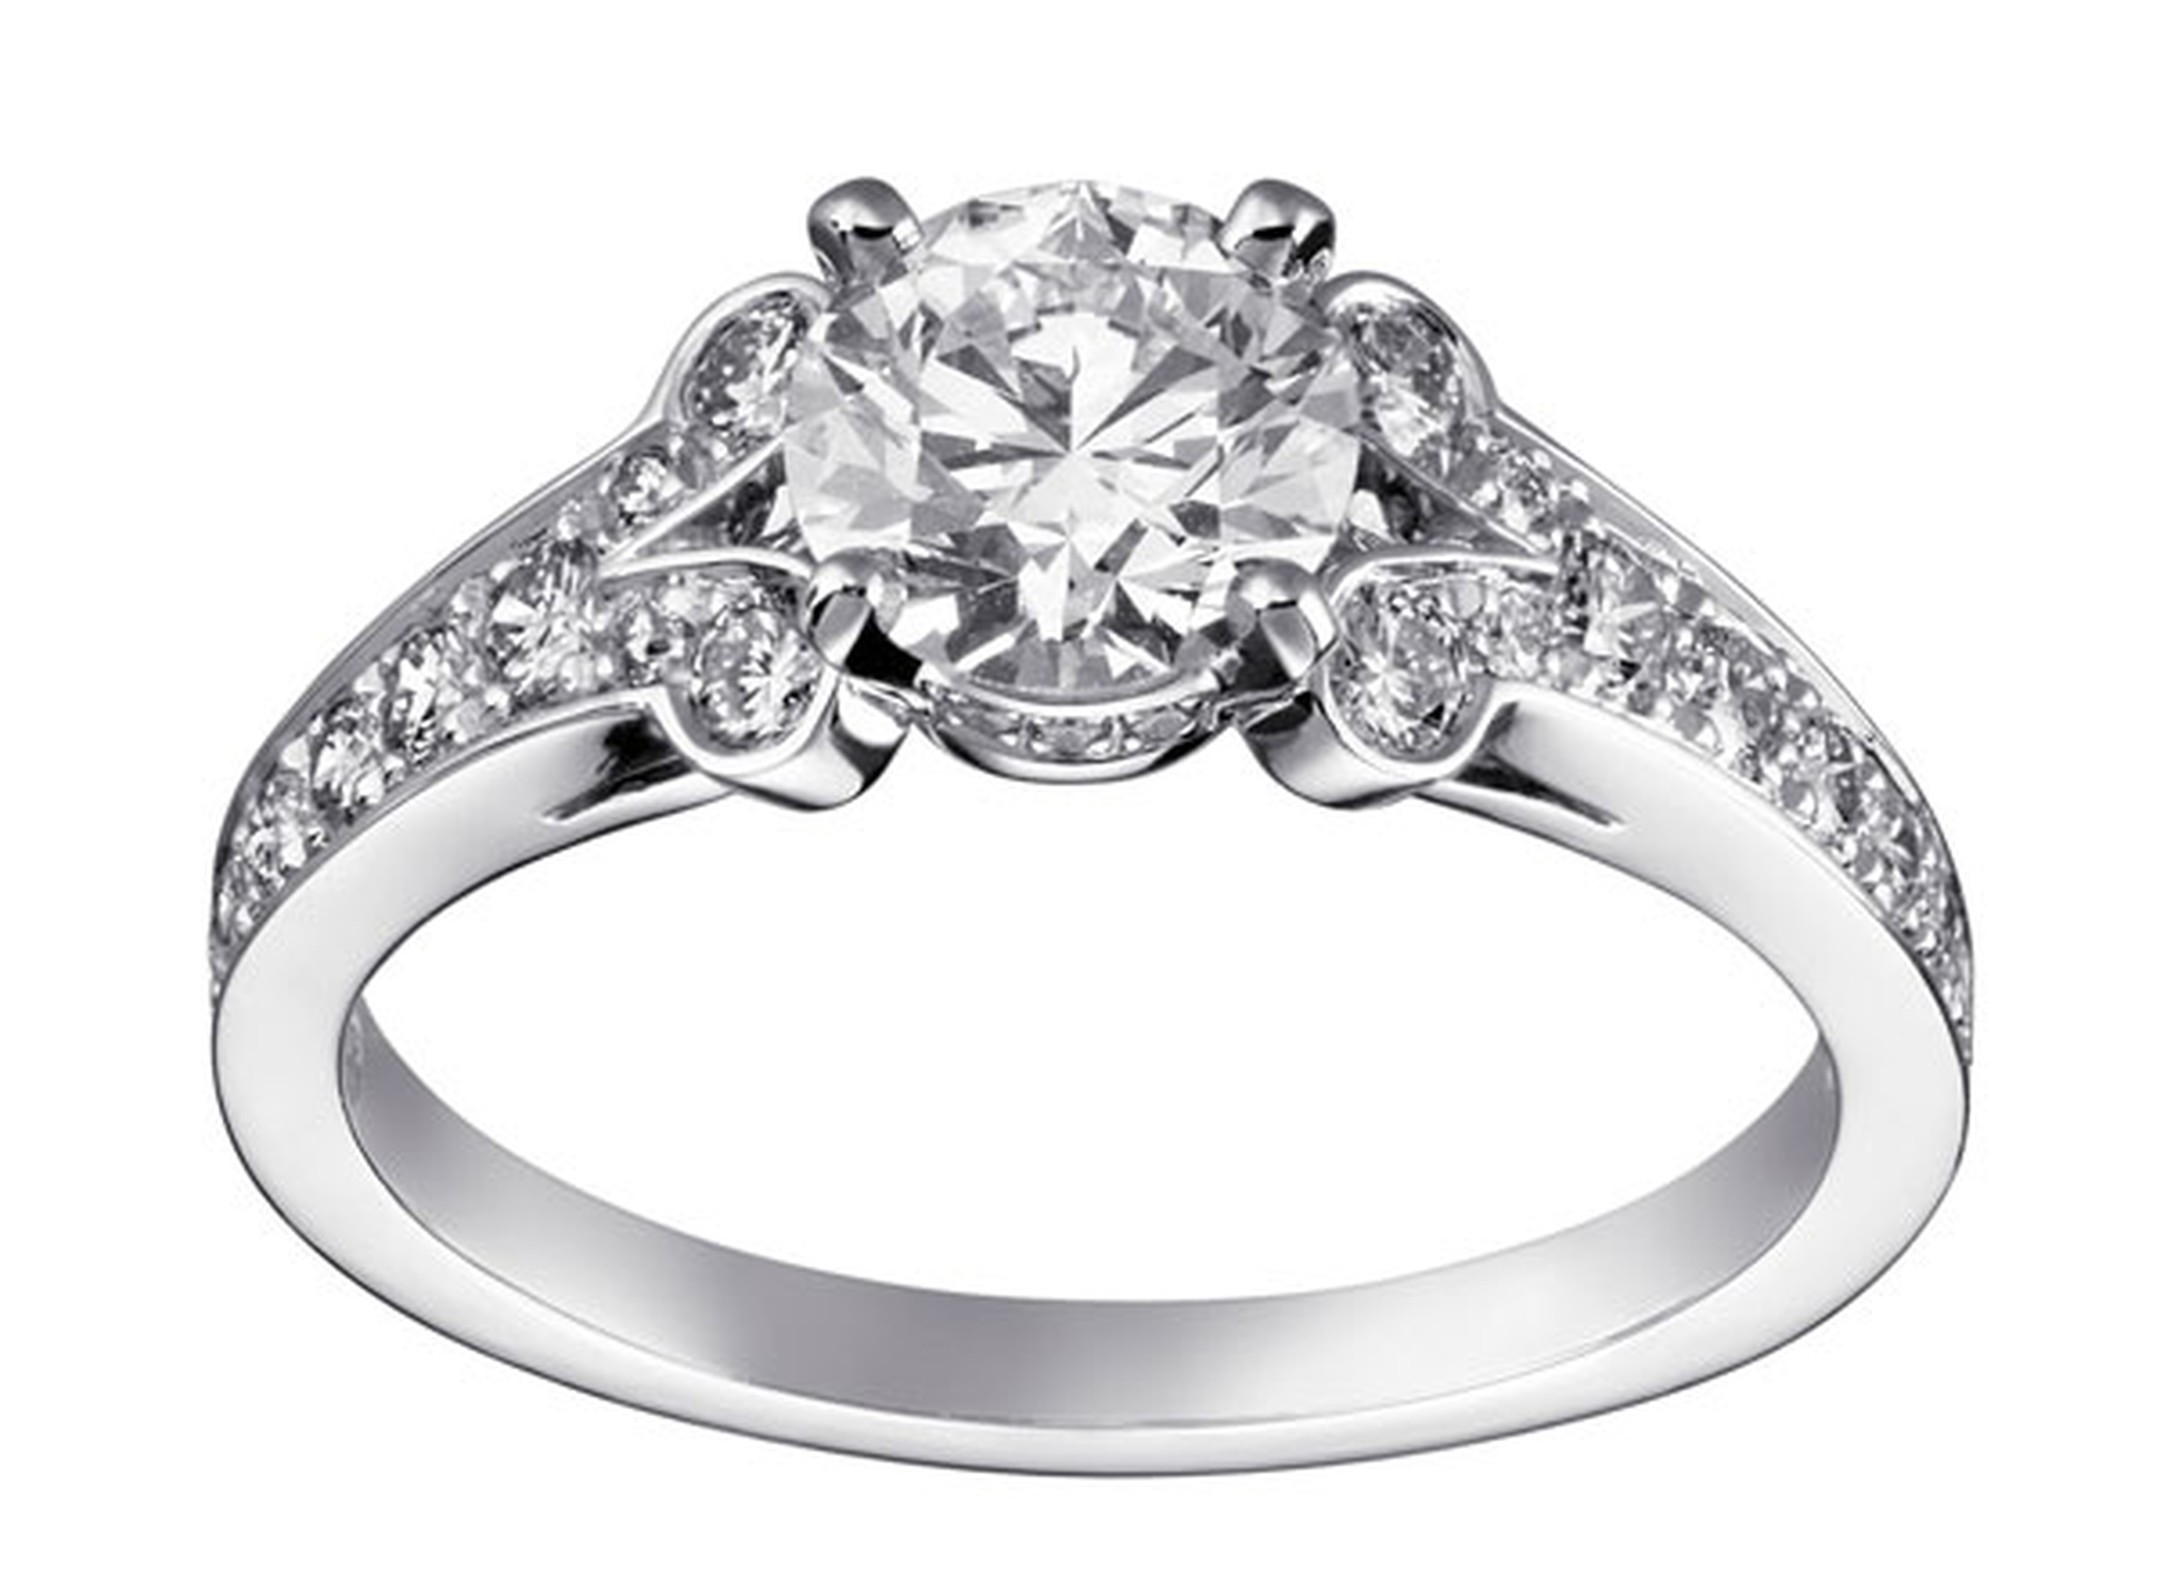 Cartier. 'Ballerine solitaire' - Platinum paved with brilliant-cut diamonds, central brilliant-cut diamond